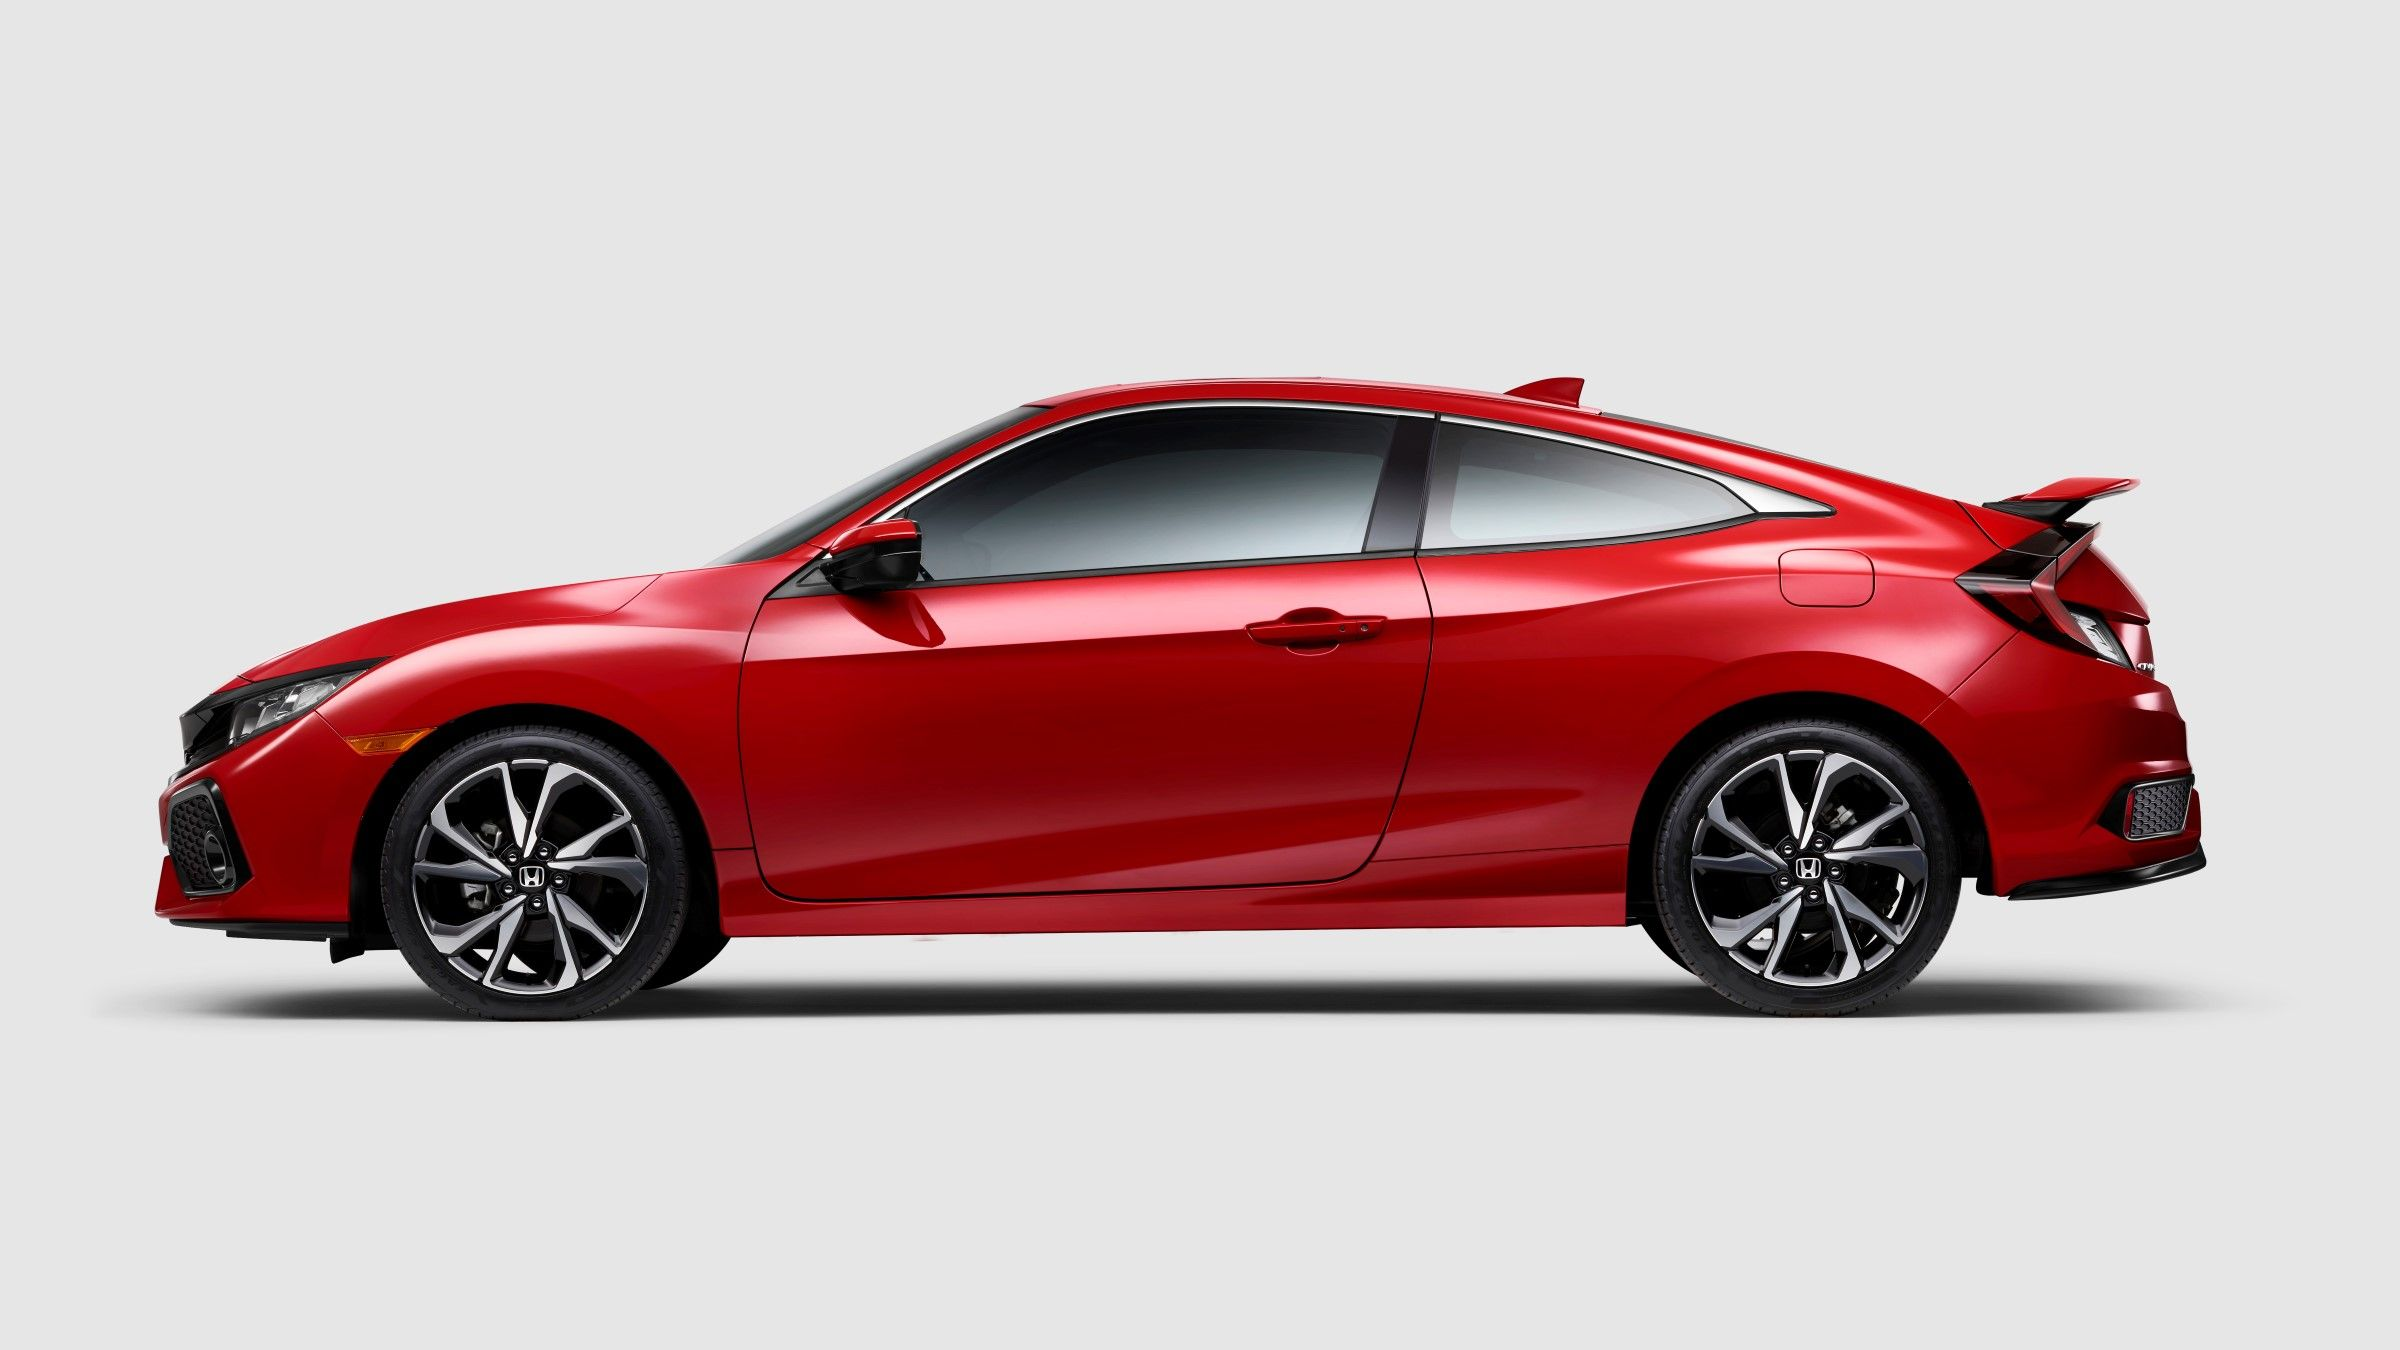 2017 Honda Civic Si Honda Civic Honda civic si, Honda